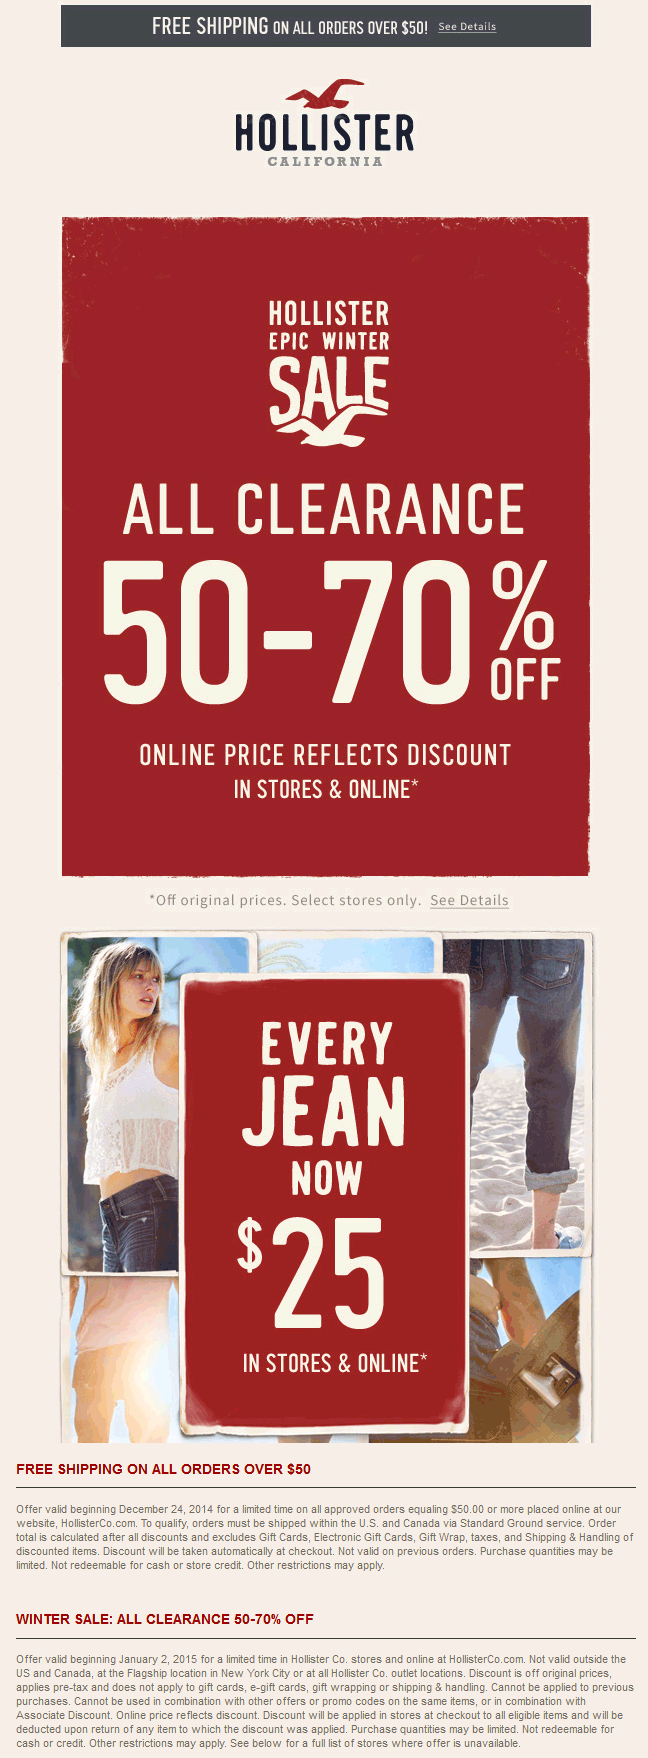 Hollister Coupon December 2017 Extra 50-70% off clearance at Hollister, ditto online